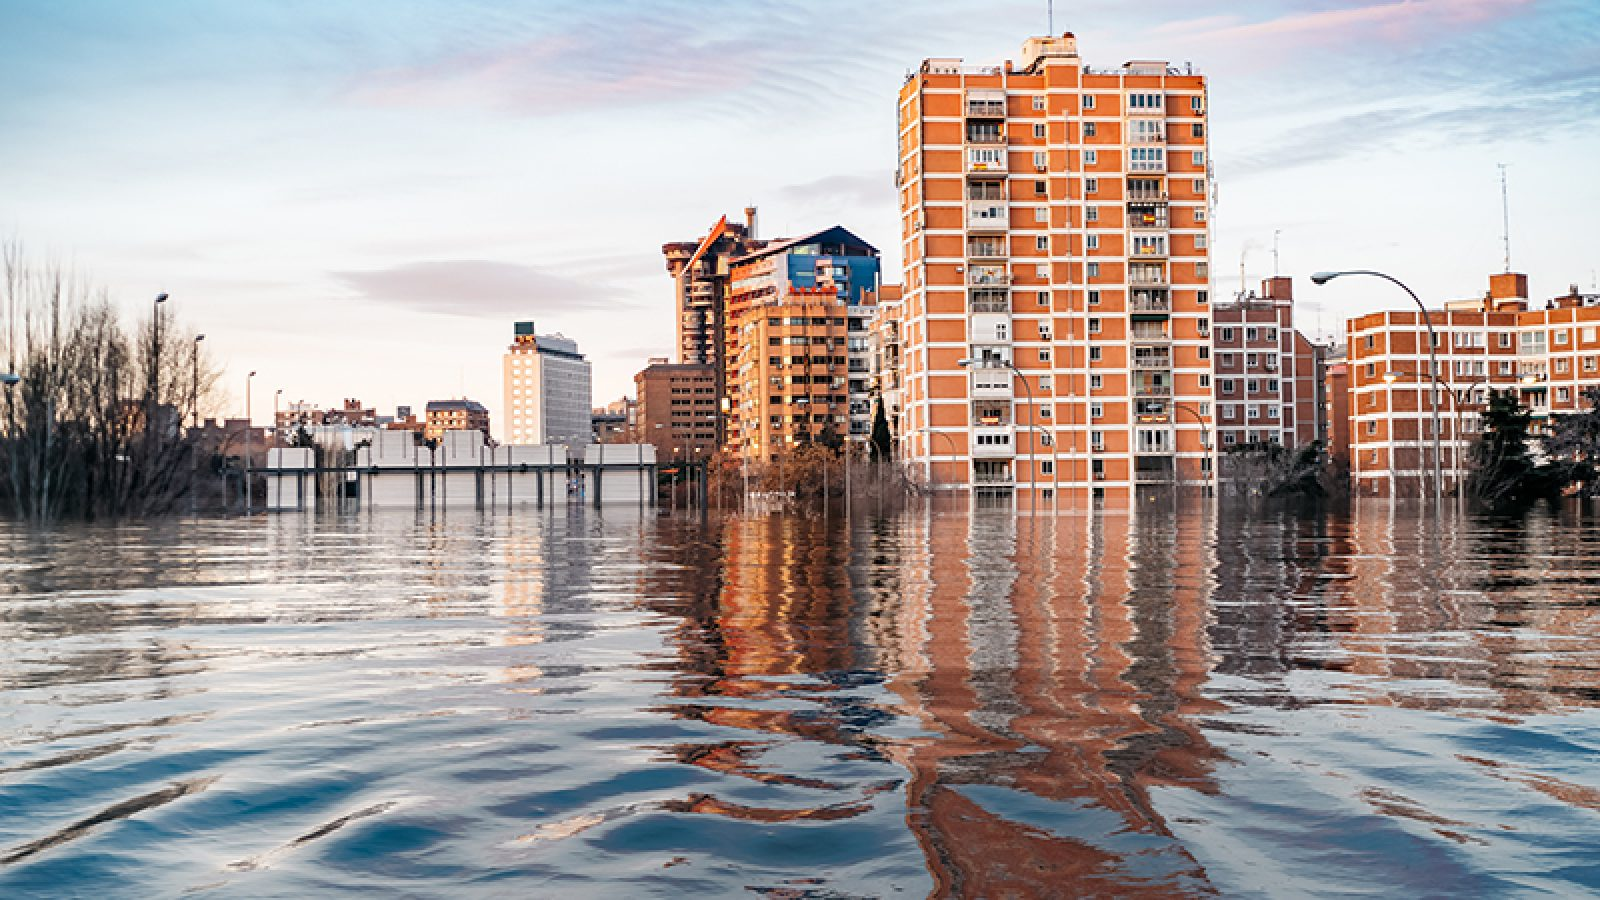 Hypothetical depiction of flooding in Madrid with tall buildings due to climate change